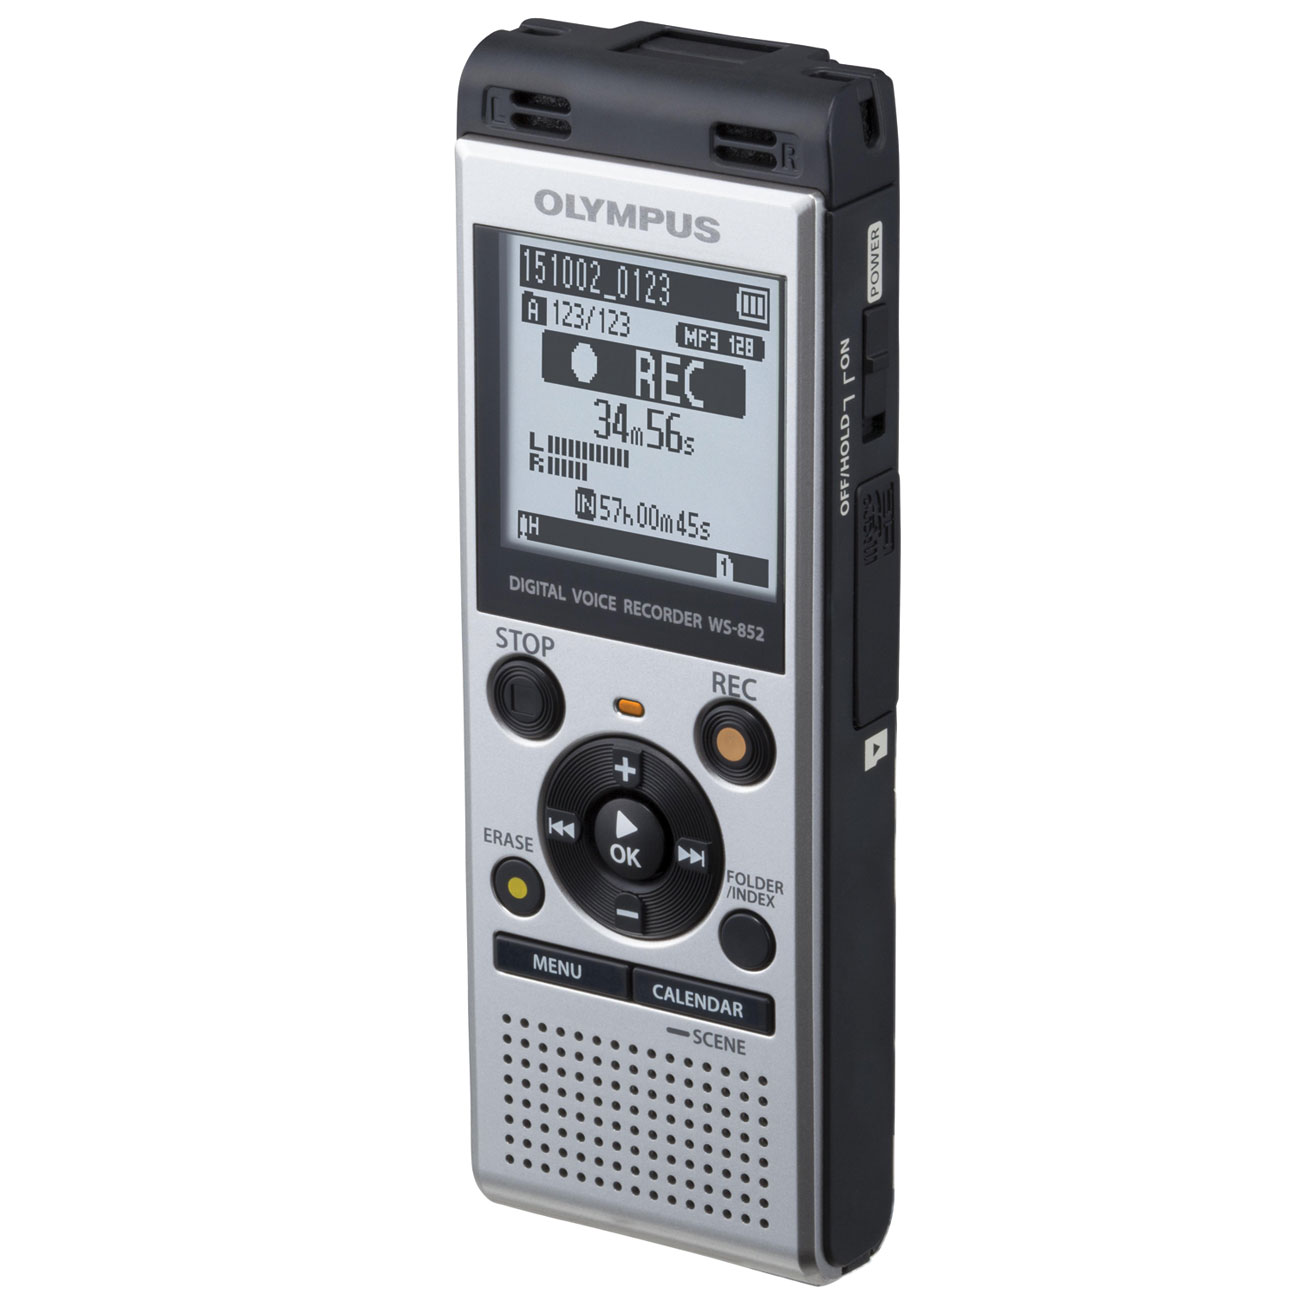 Olympus Digital Voice/MP3/WMA Recorder-Player: 2GB Price: $69.95